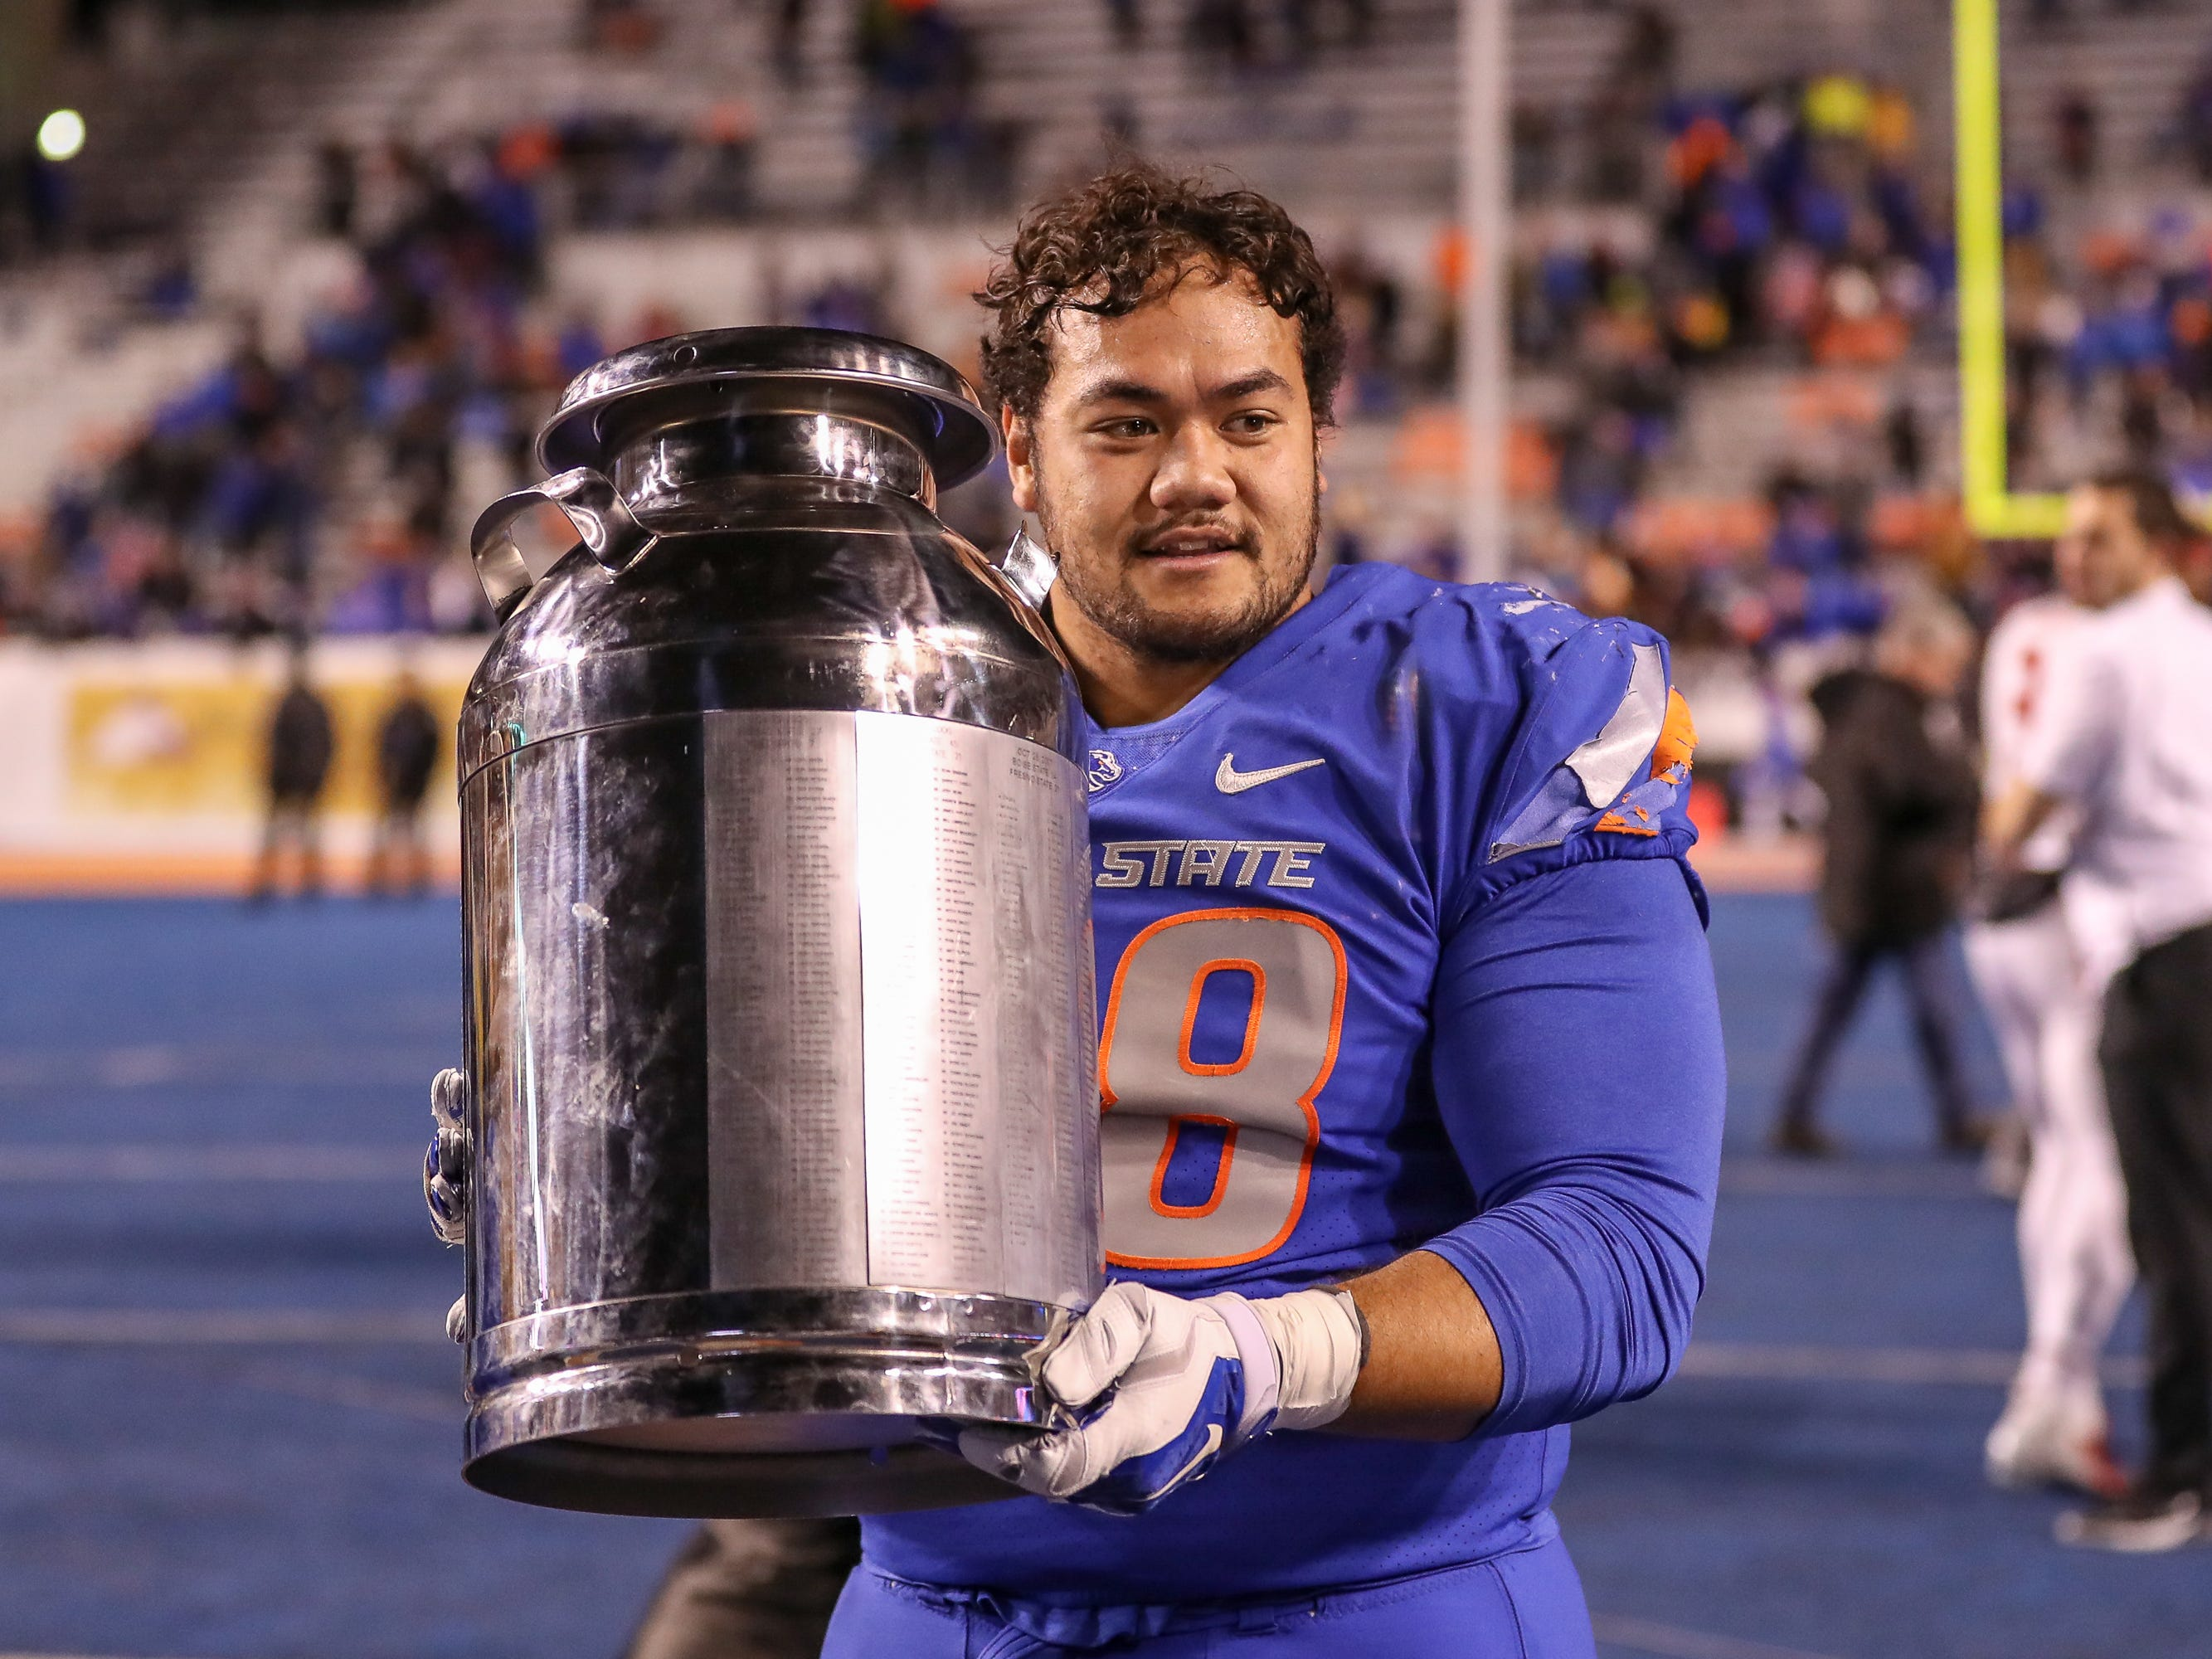 Milk Can: Boise State nose tackle Sonatane Lui celebrates by holding the Milk Can after the Broncos beat Fresno State, 24-17, at Albertsons Stadium on Nov. 9.